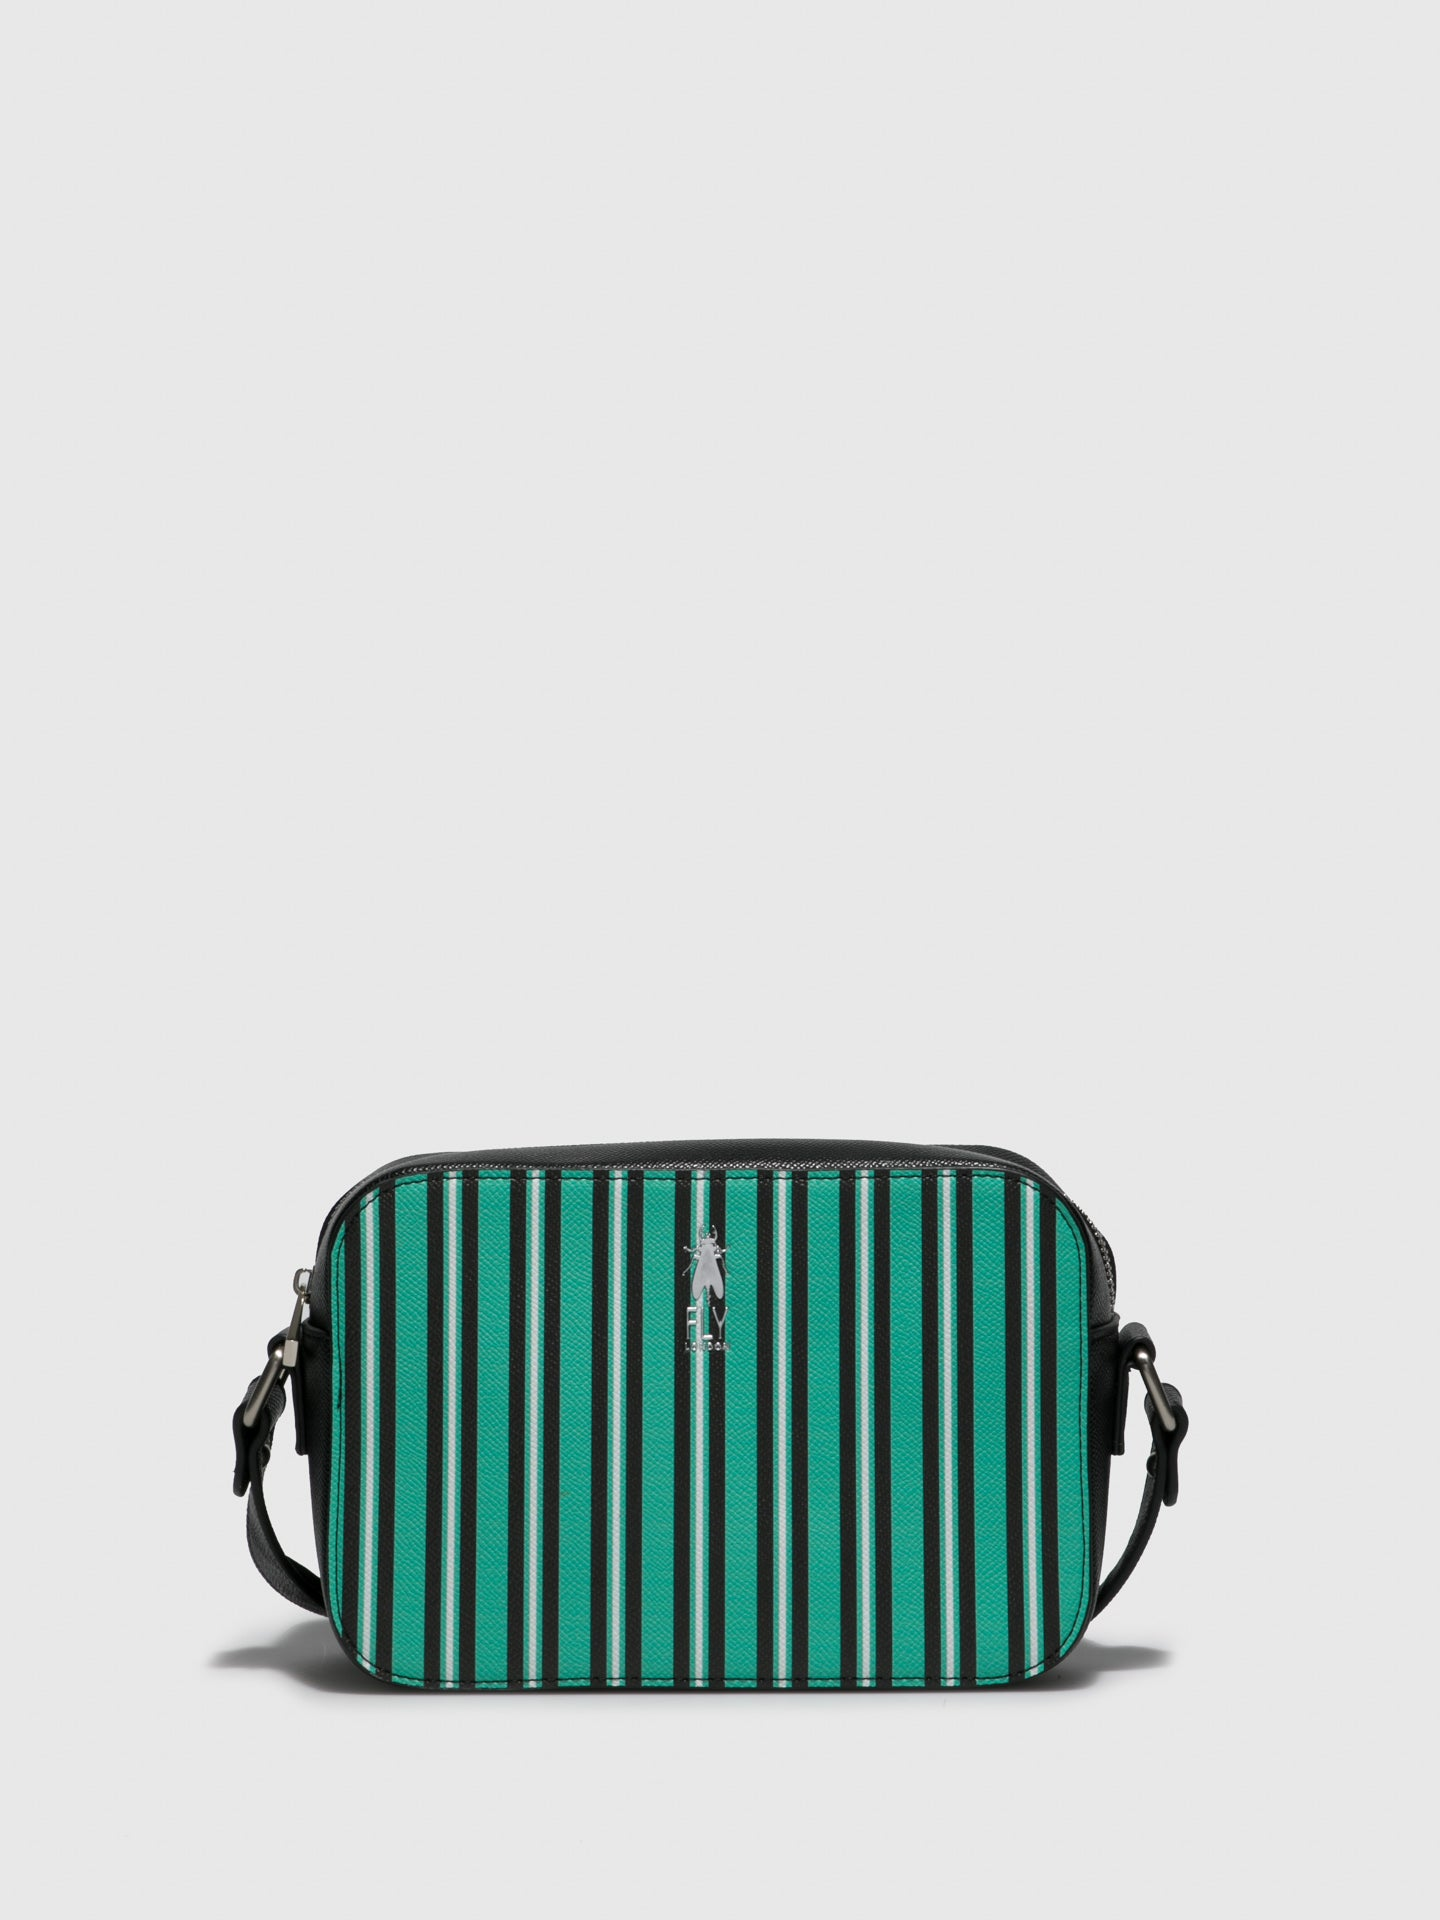 Fly London Green Black Crossbody Bag